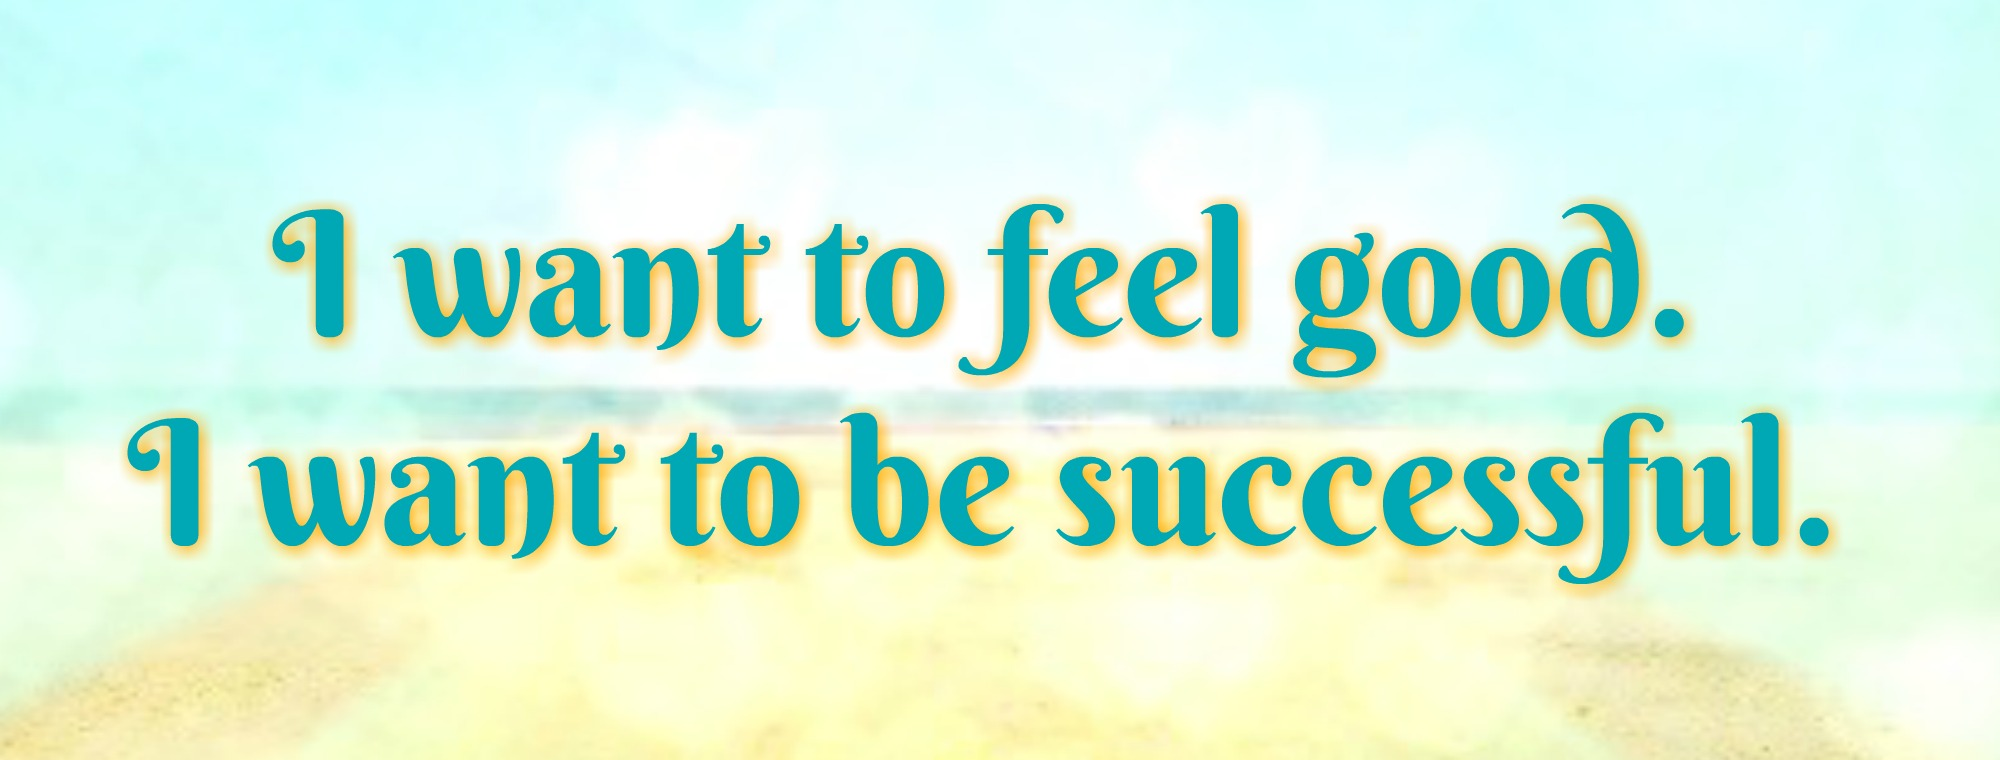 feelings slides feel good successful